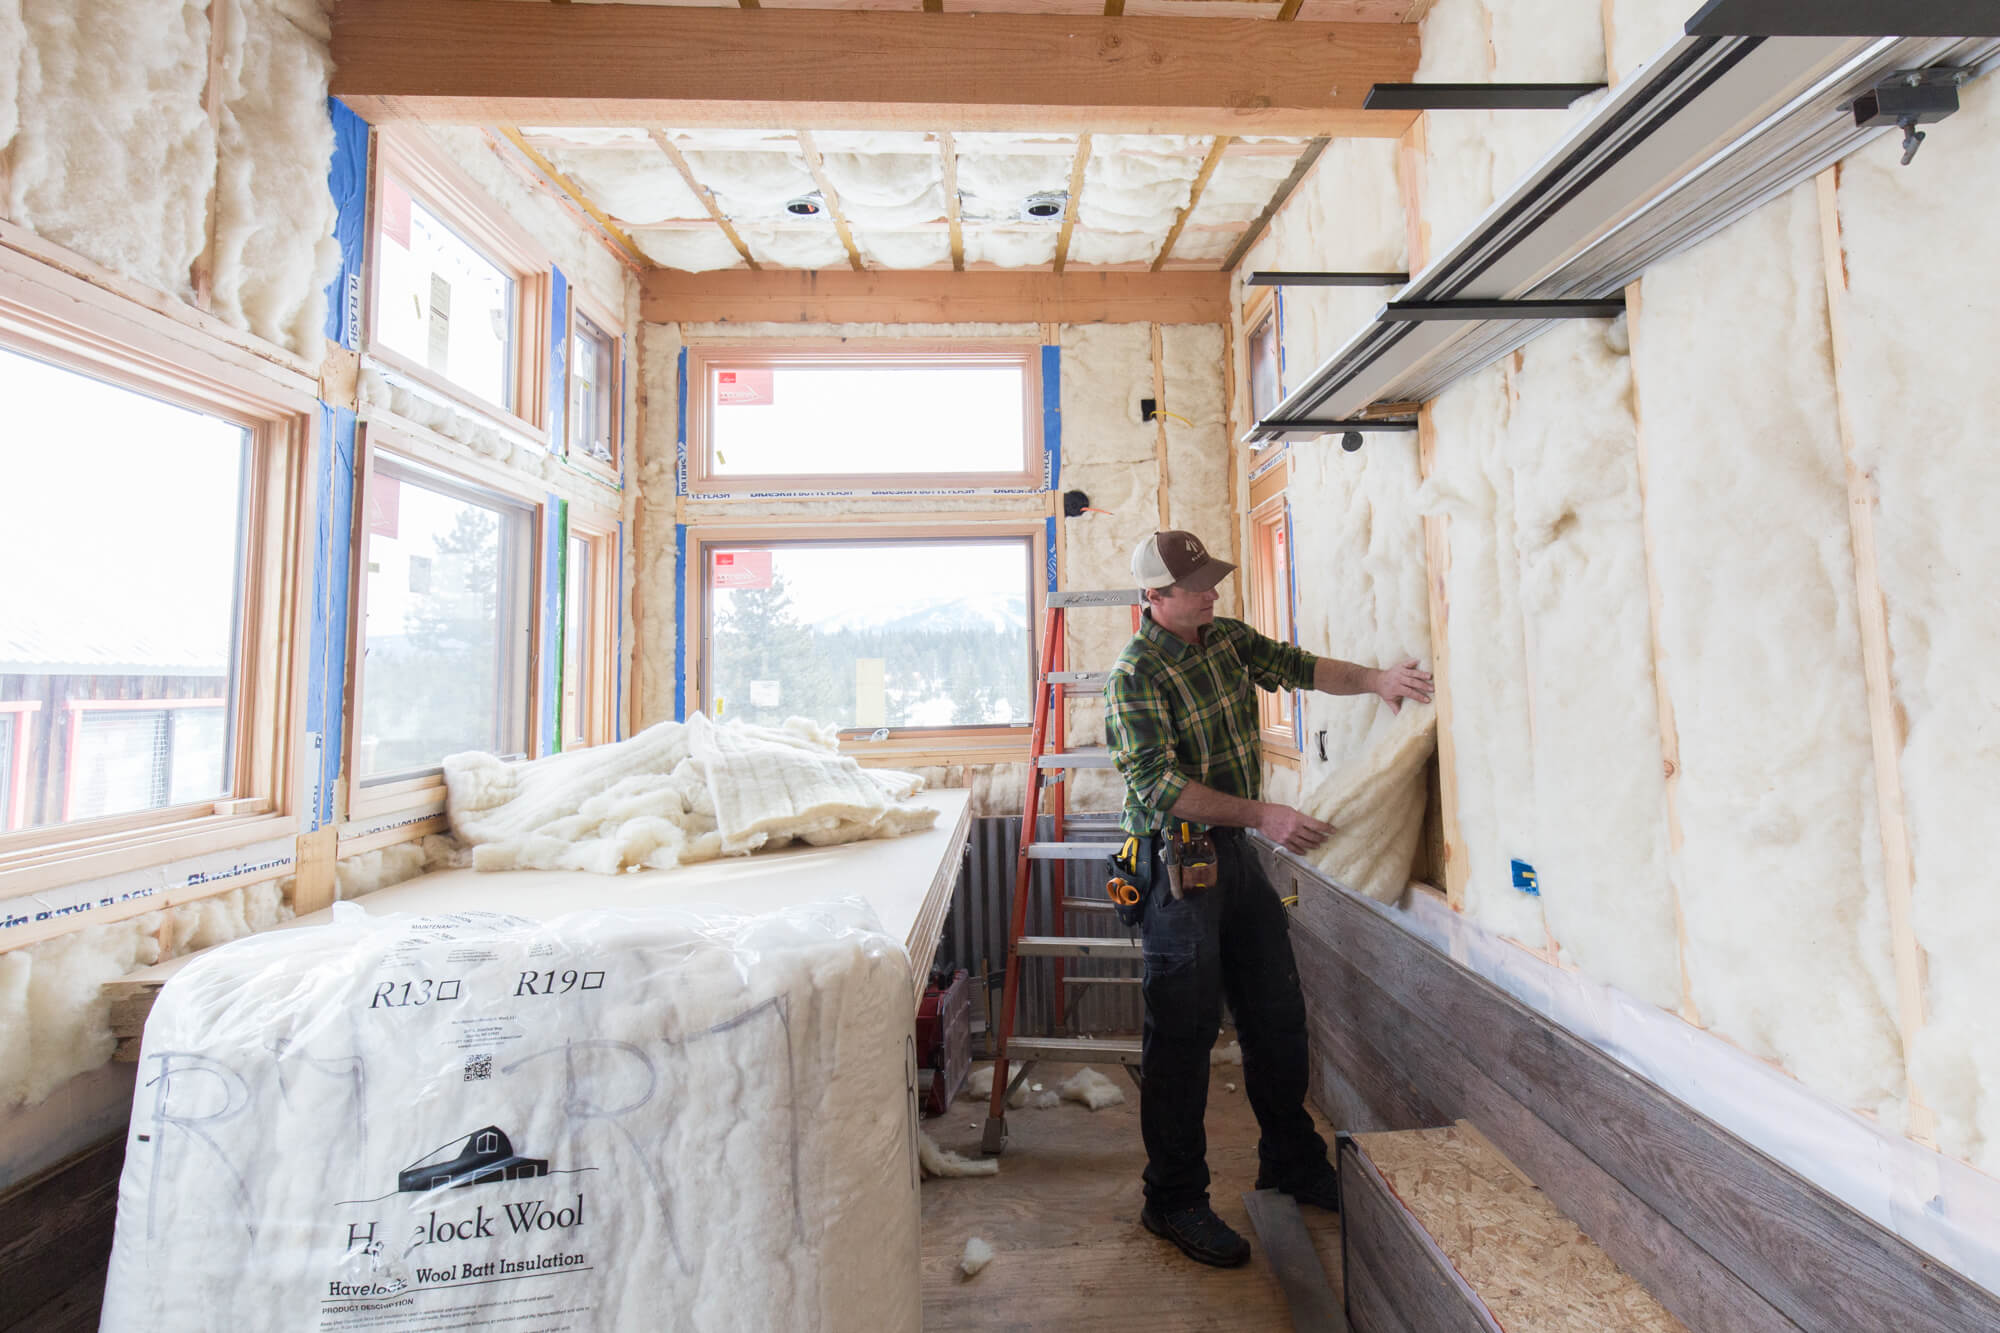 Havelock Wool is ideal for Tiny Houses